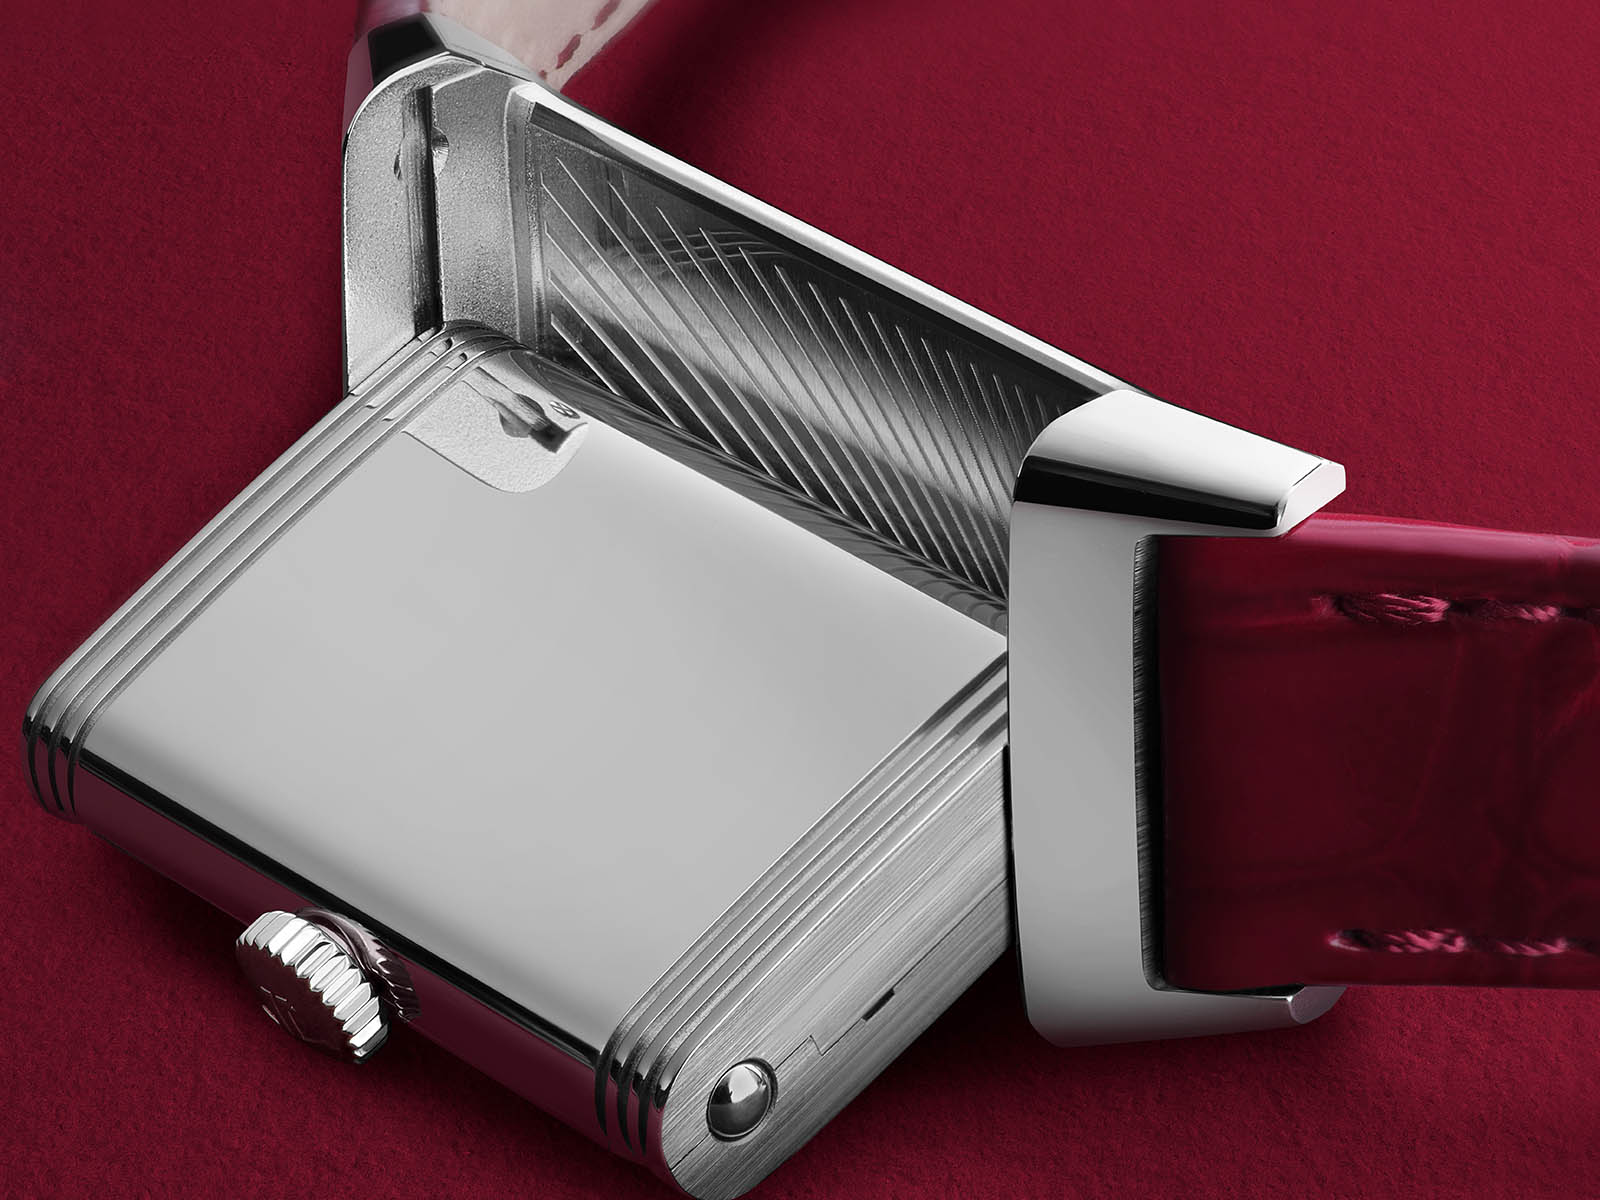 q3288560-jaeger-lecoultre-reverso-one-red-wine-5.jpg